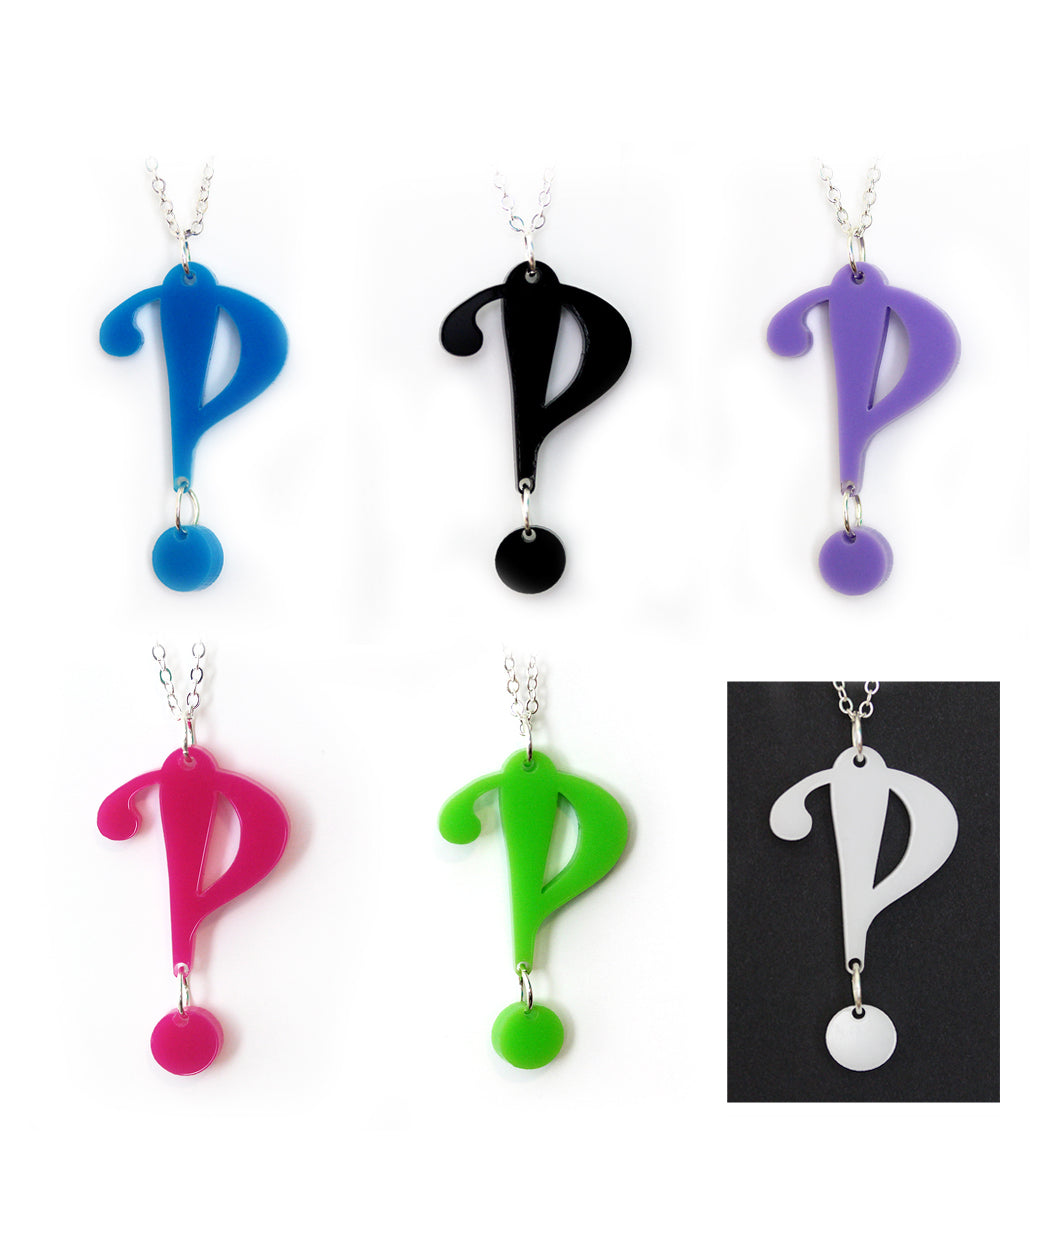 Interrobang Necklace